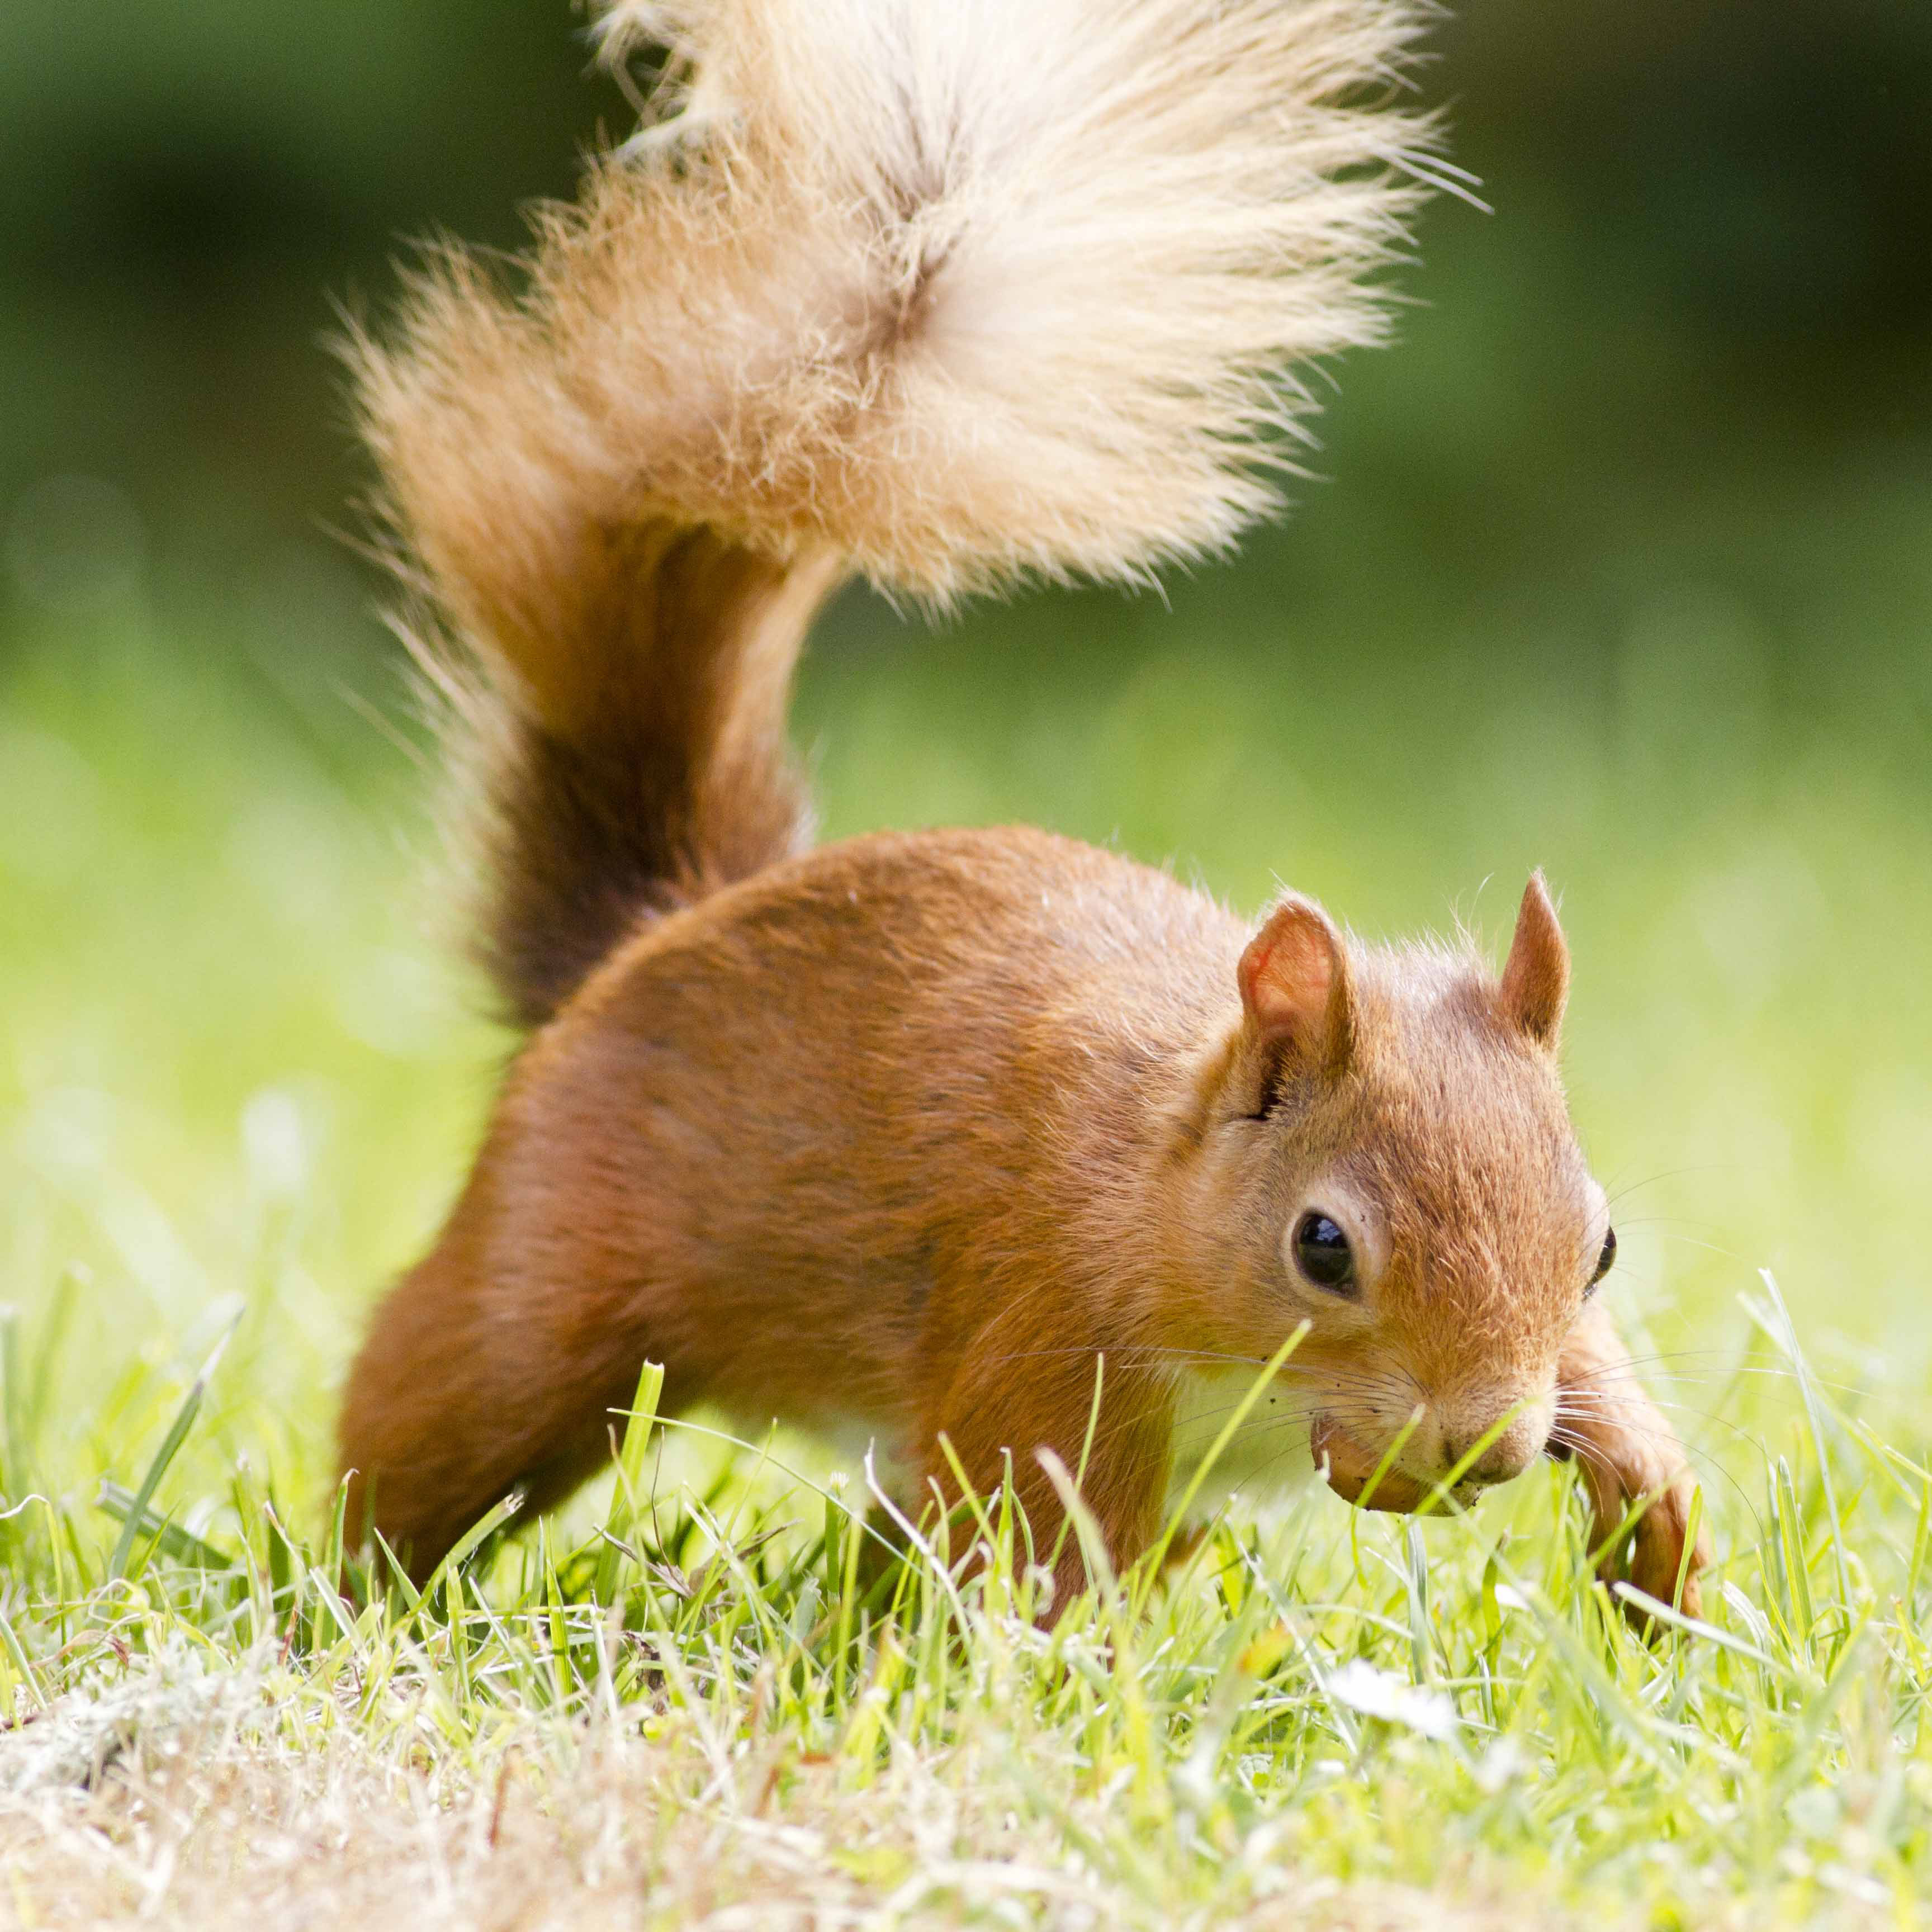 Gardening for red squirrels